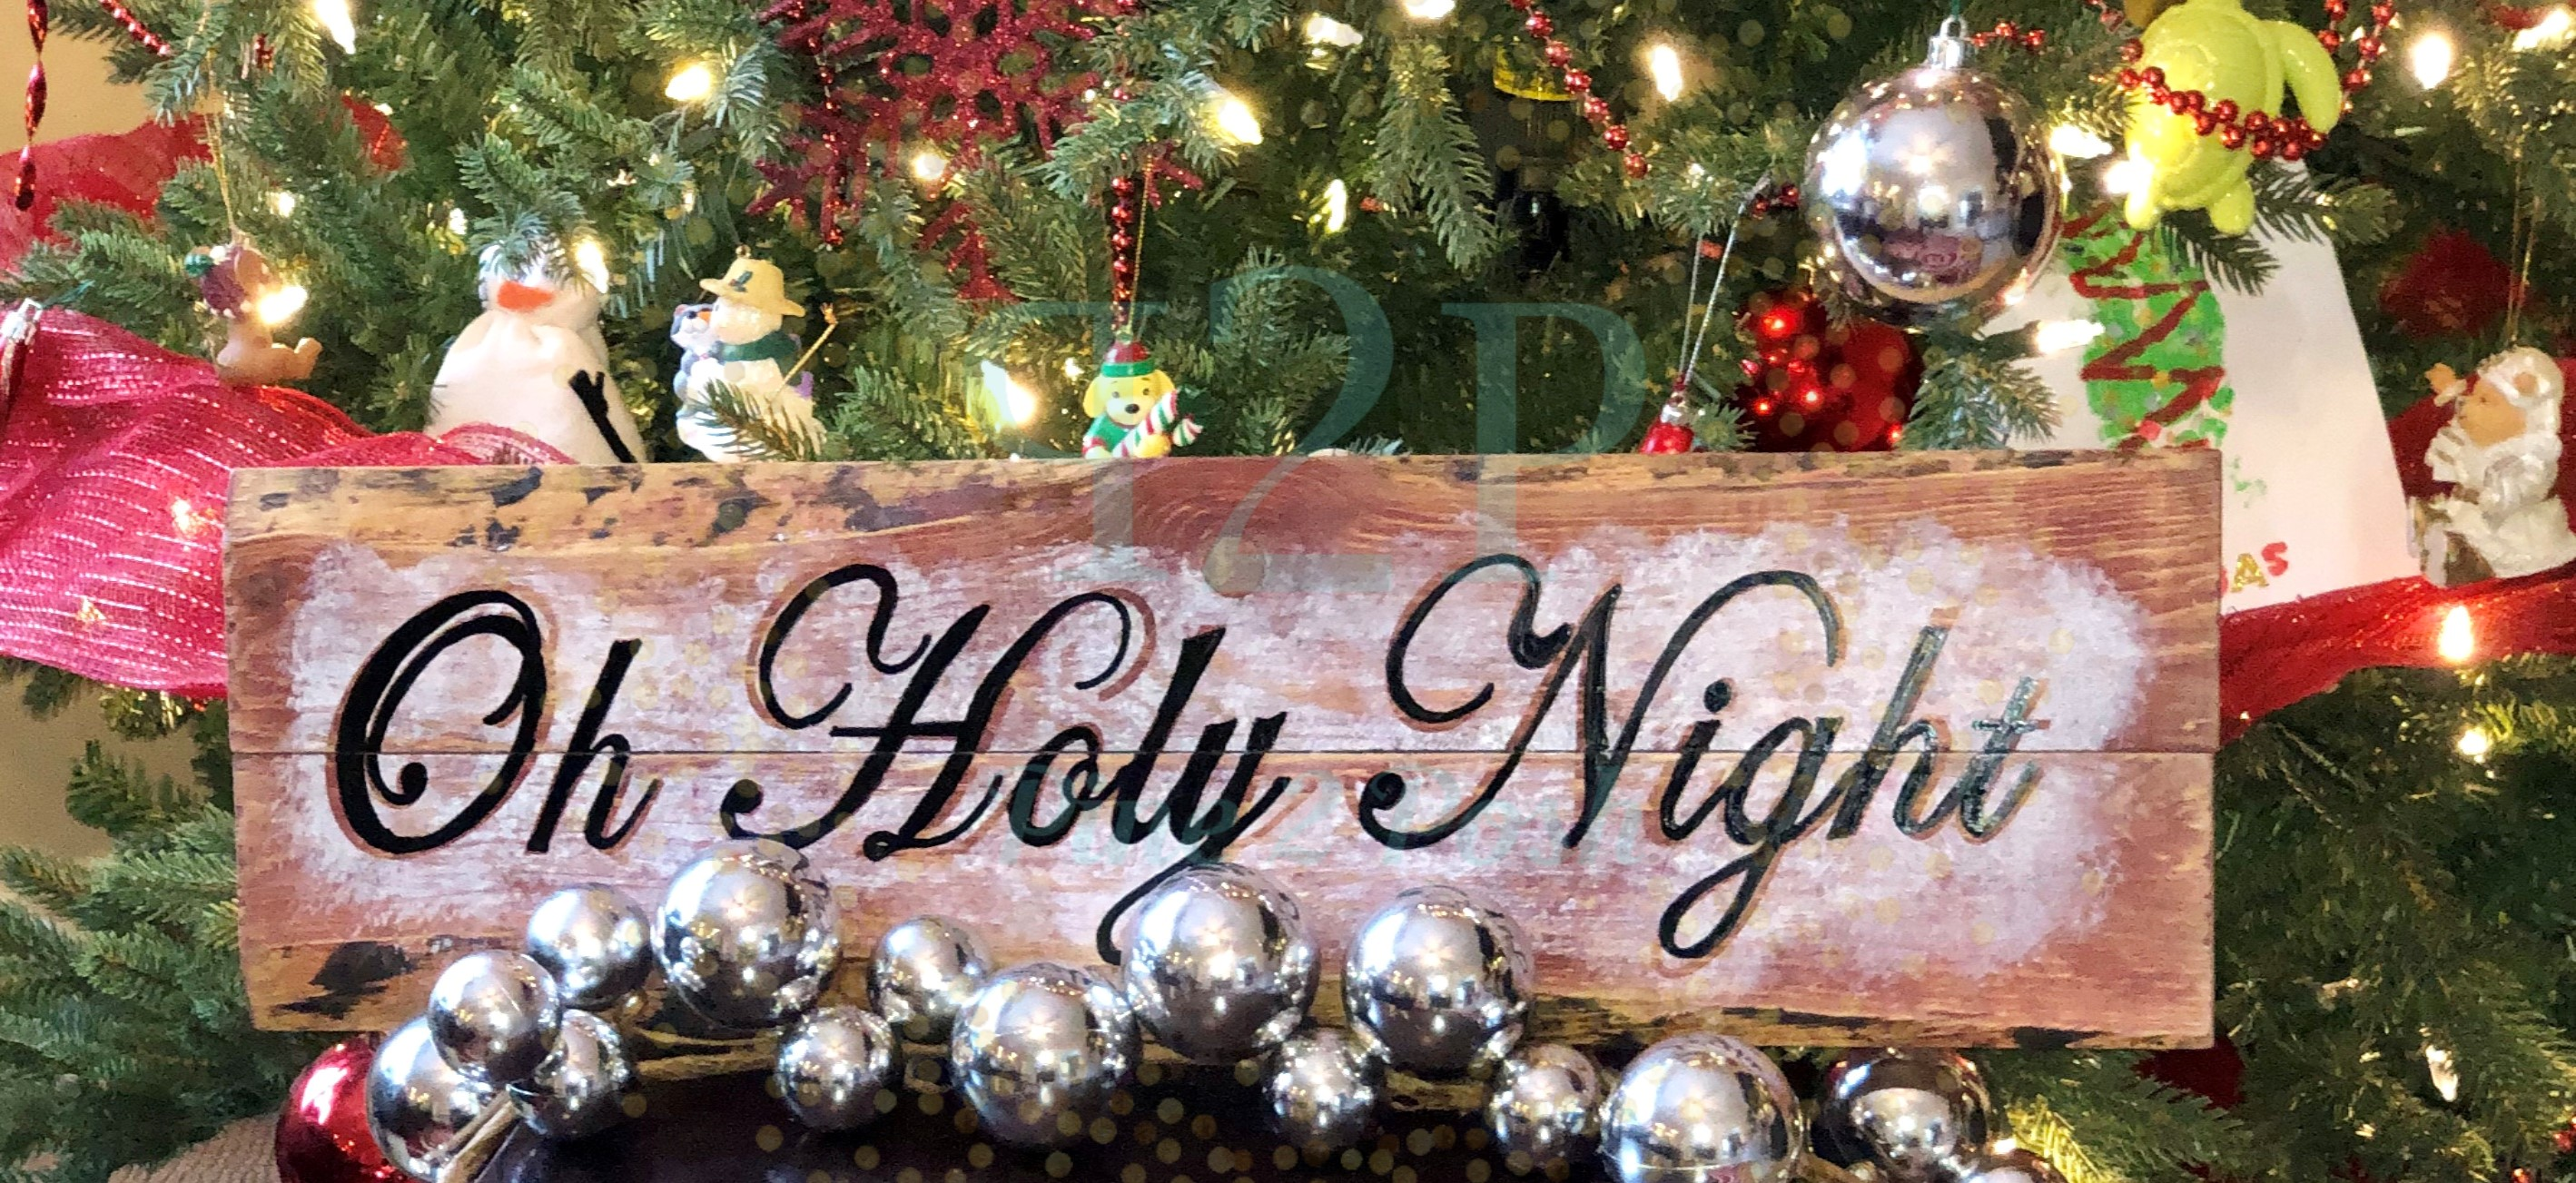 32 HOLY NIGHT